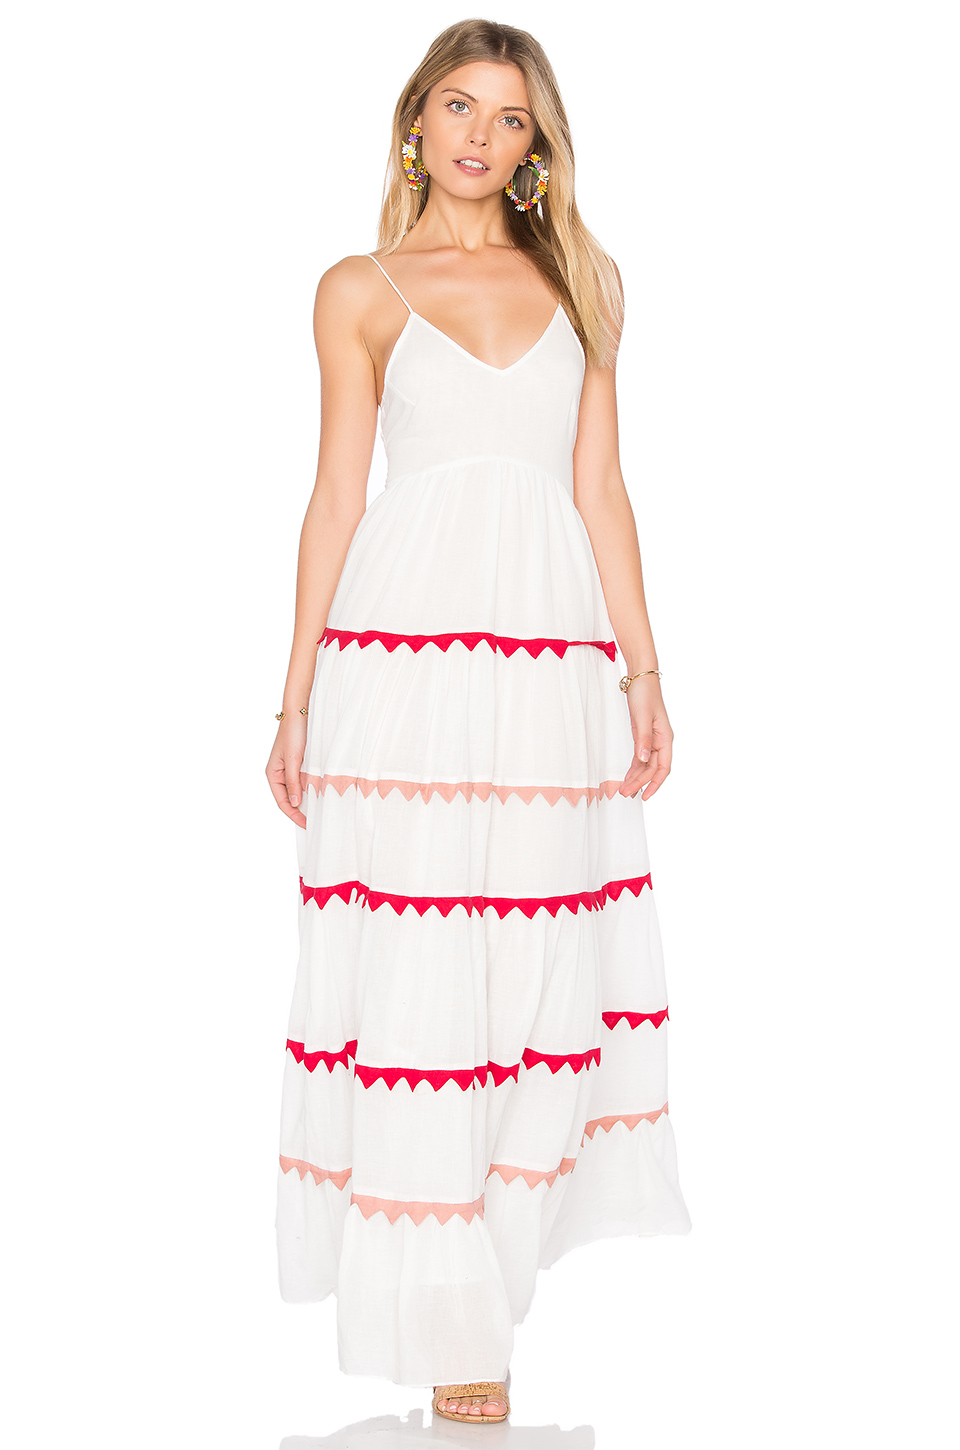 Carolina K Marieta Dress In White